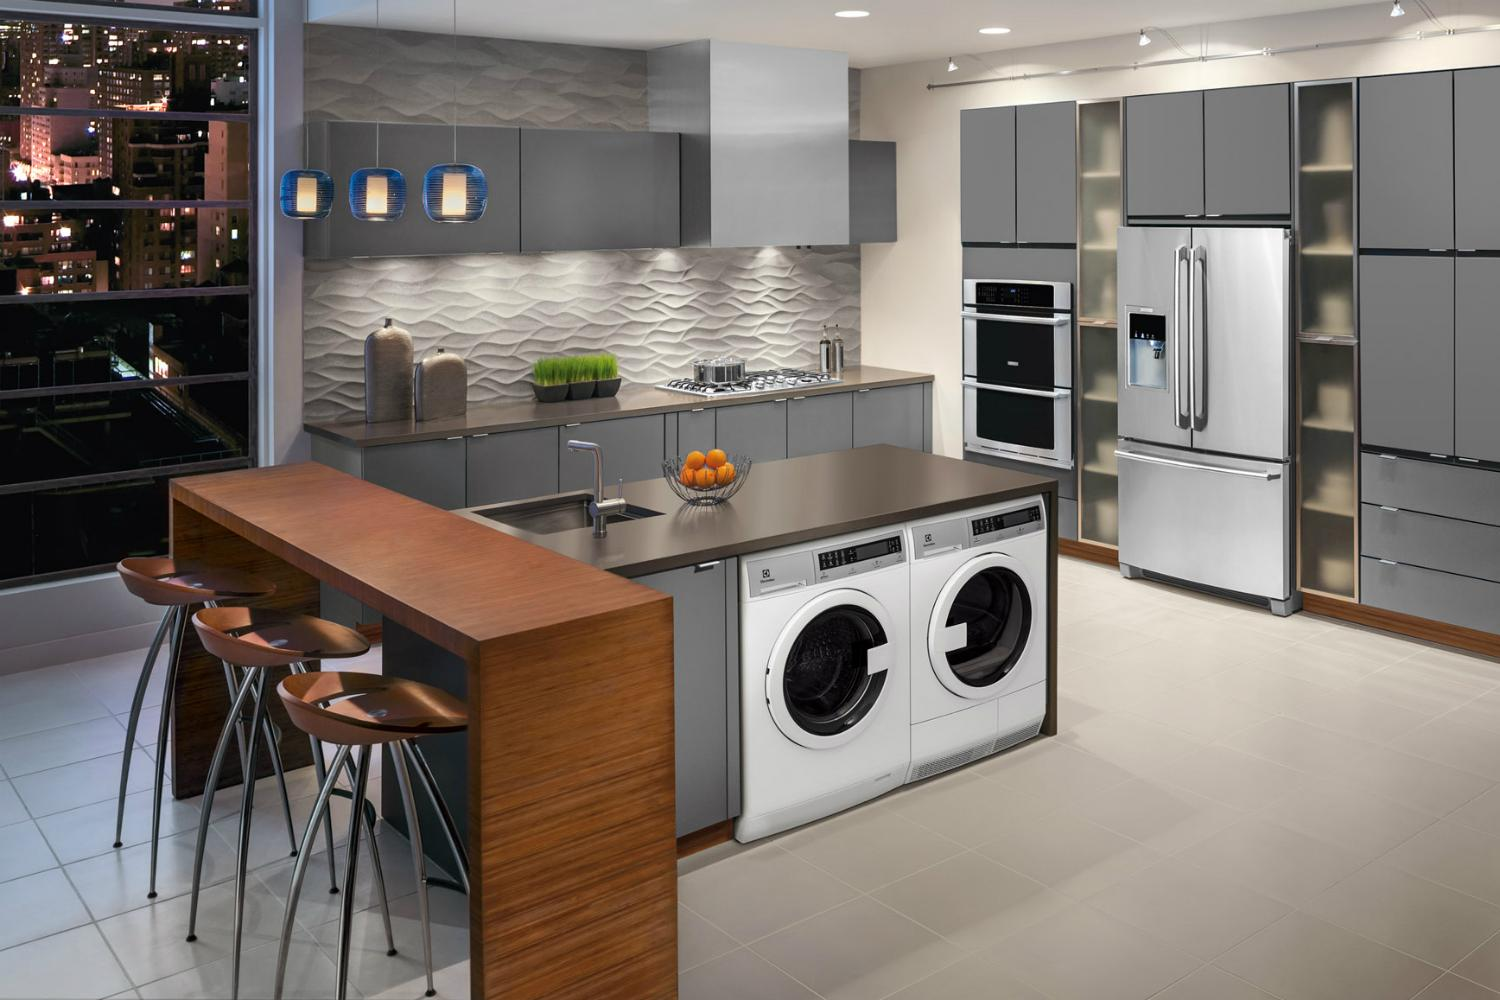 Kitchen Laundry Compact Washers And Dryers Are Apartment Dwellers Dreams